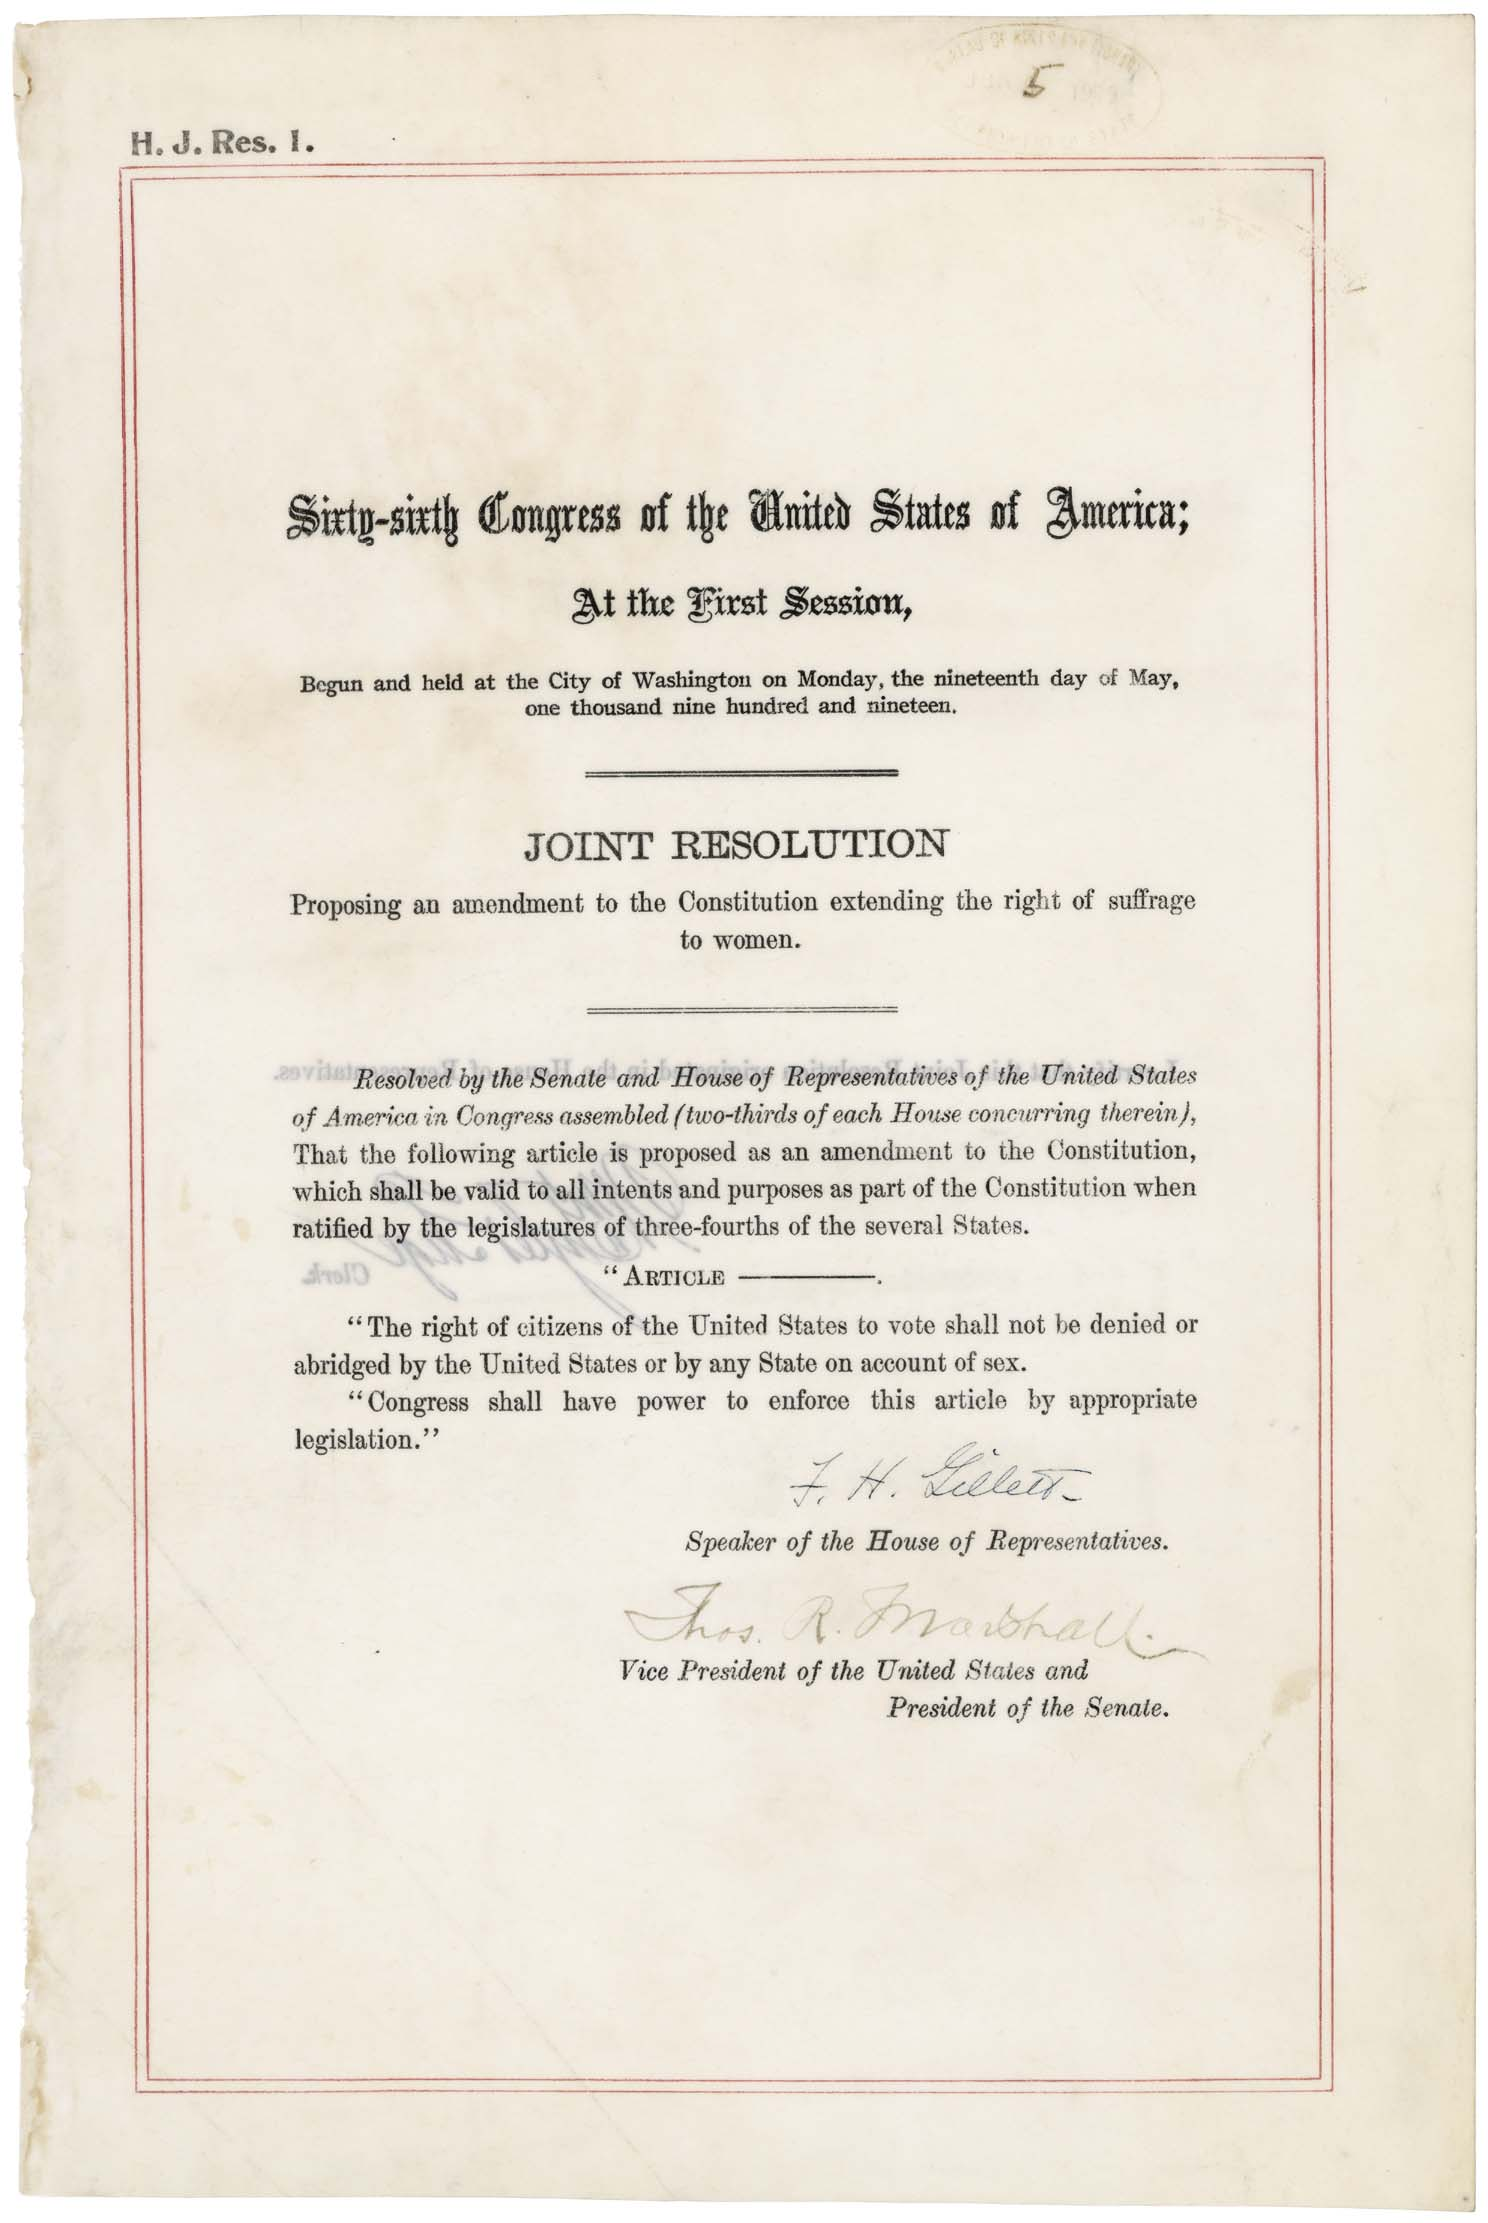 The 19th Amendment, signed by leaders of the House and Senate